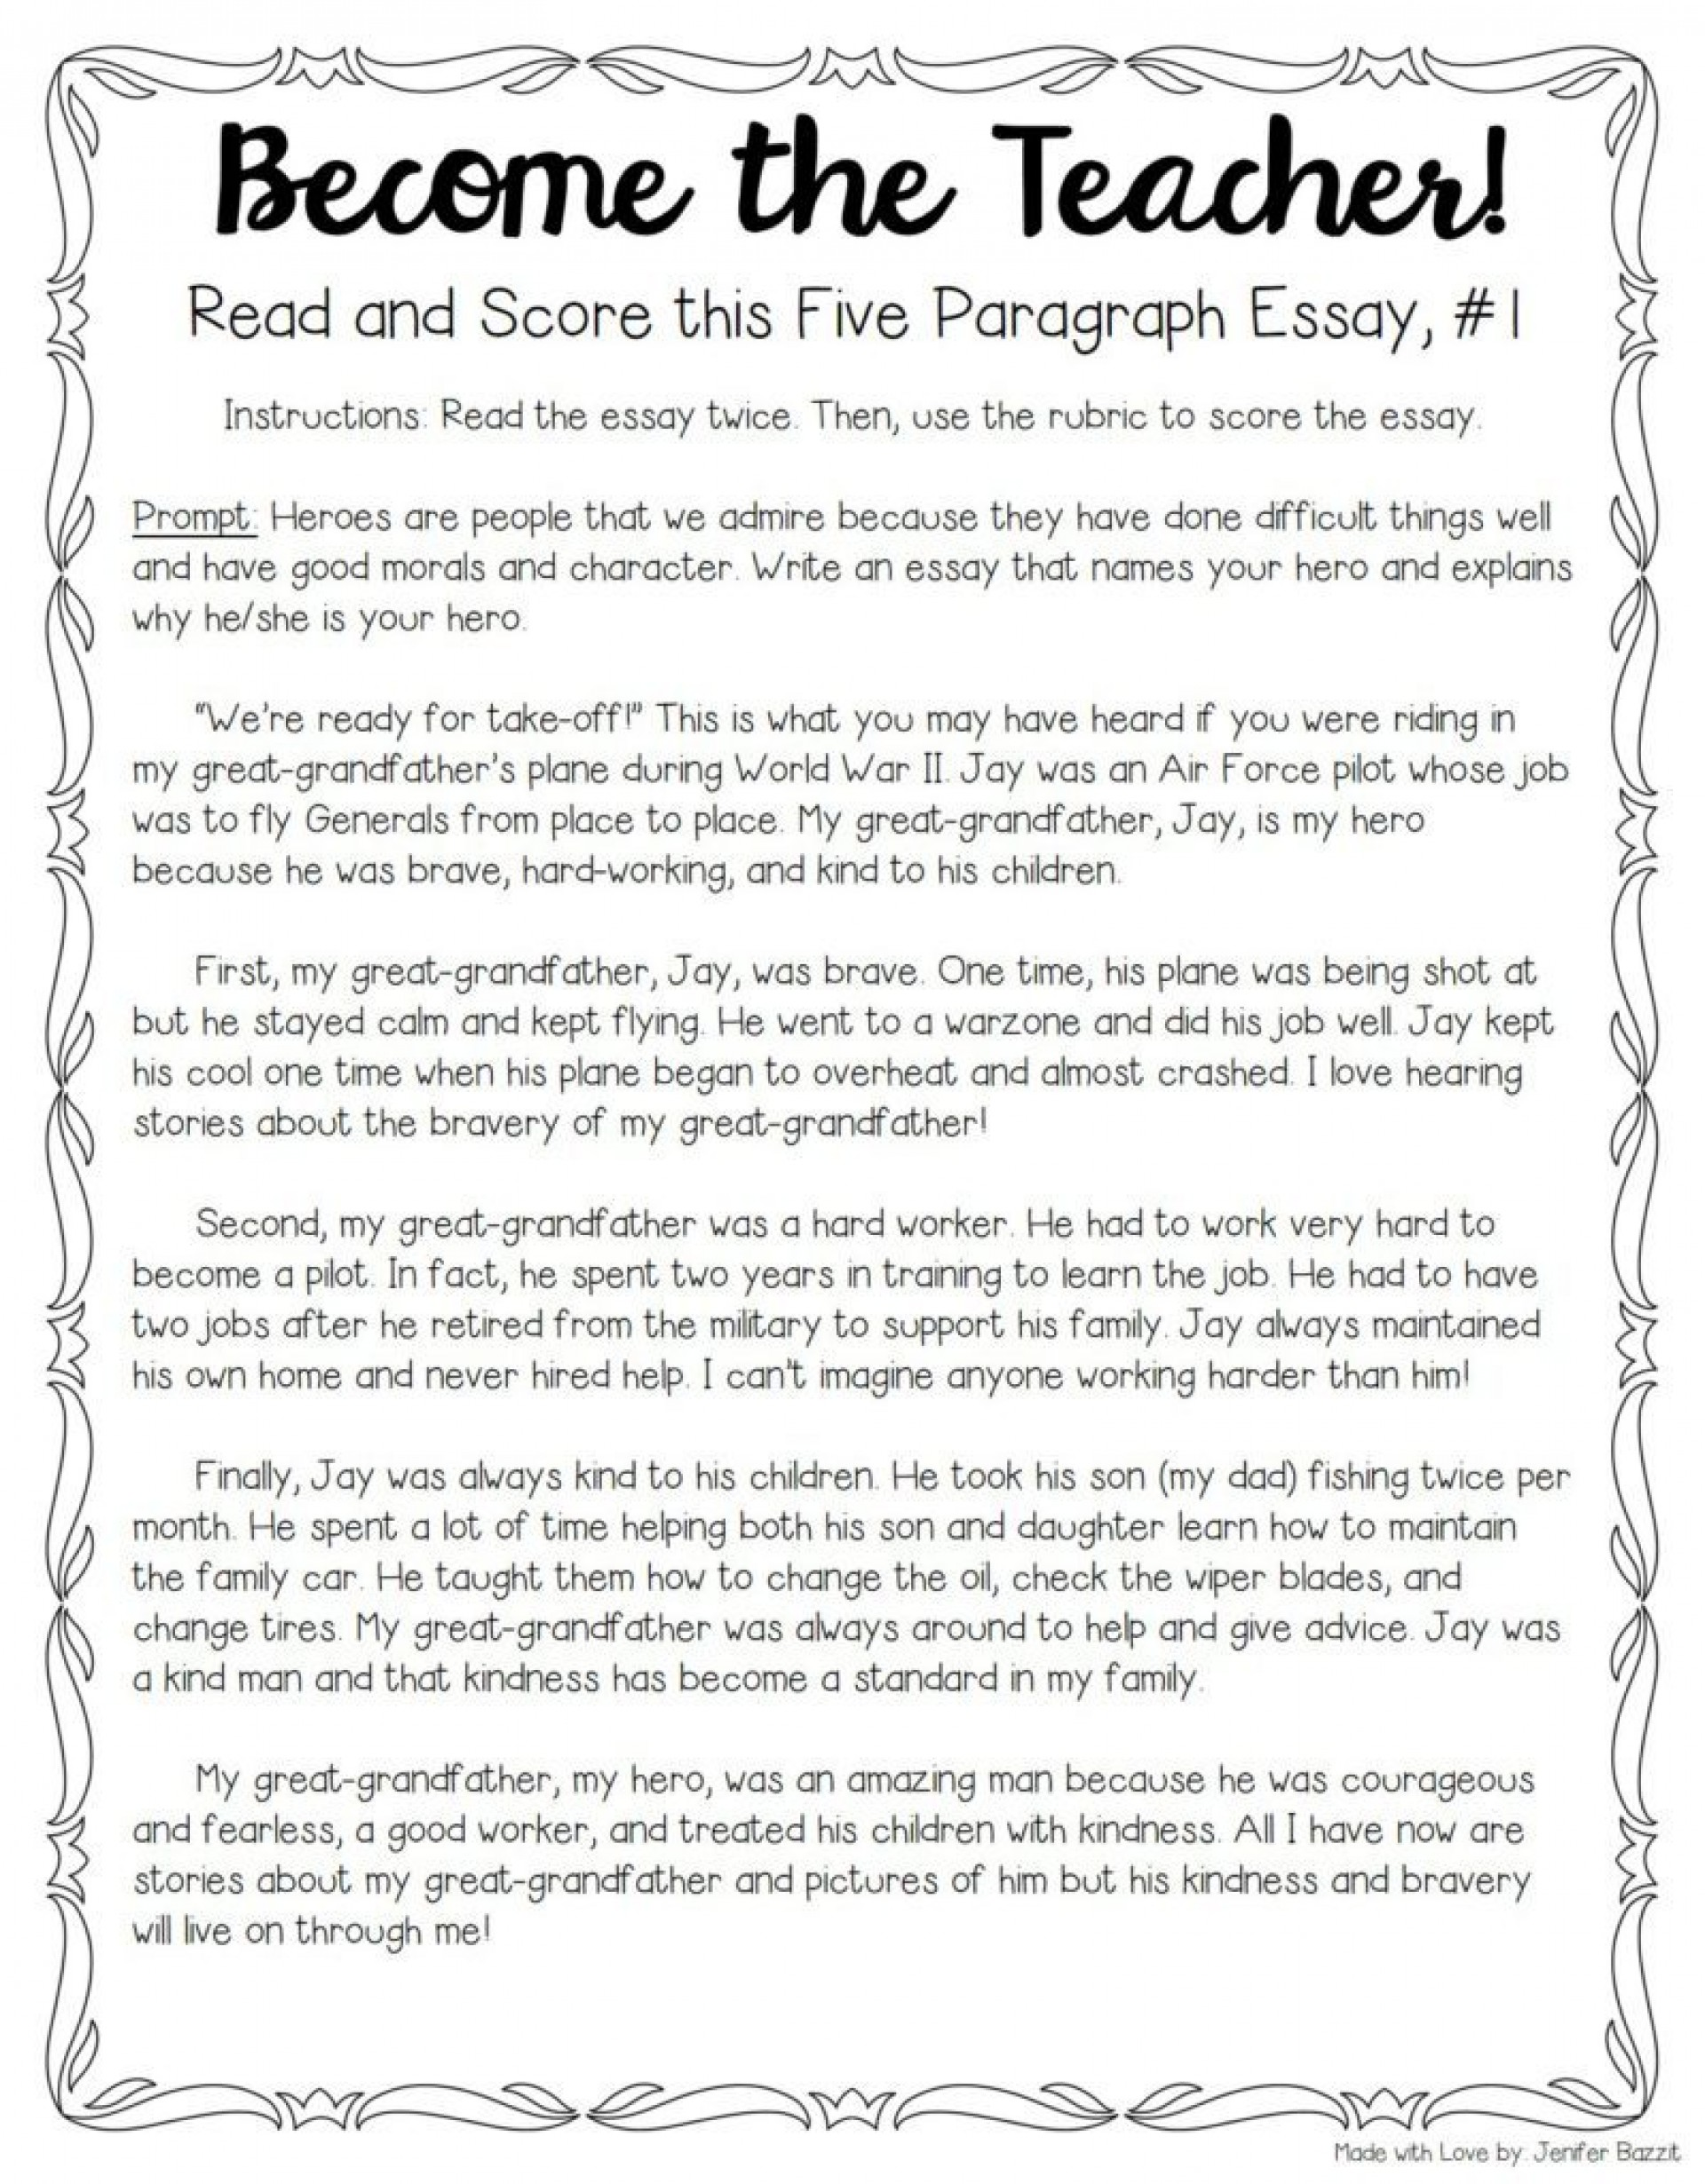 006 My Hero Essay Example Tips For Teaching And Grading Five Paragraph Essays Full Narrative Examples Persuasive Score Sat Wondrous In History With Outline Favourite Salman Khan English National 1920